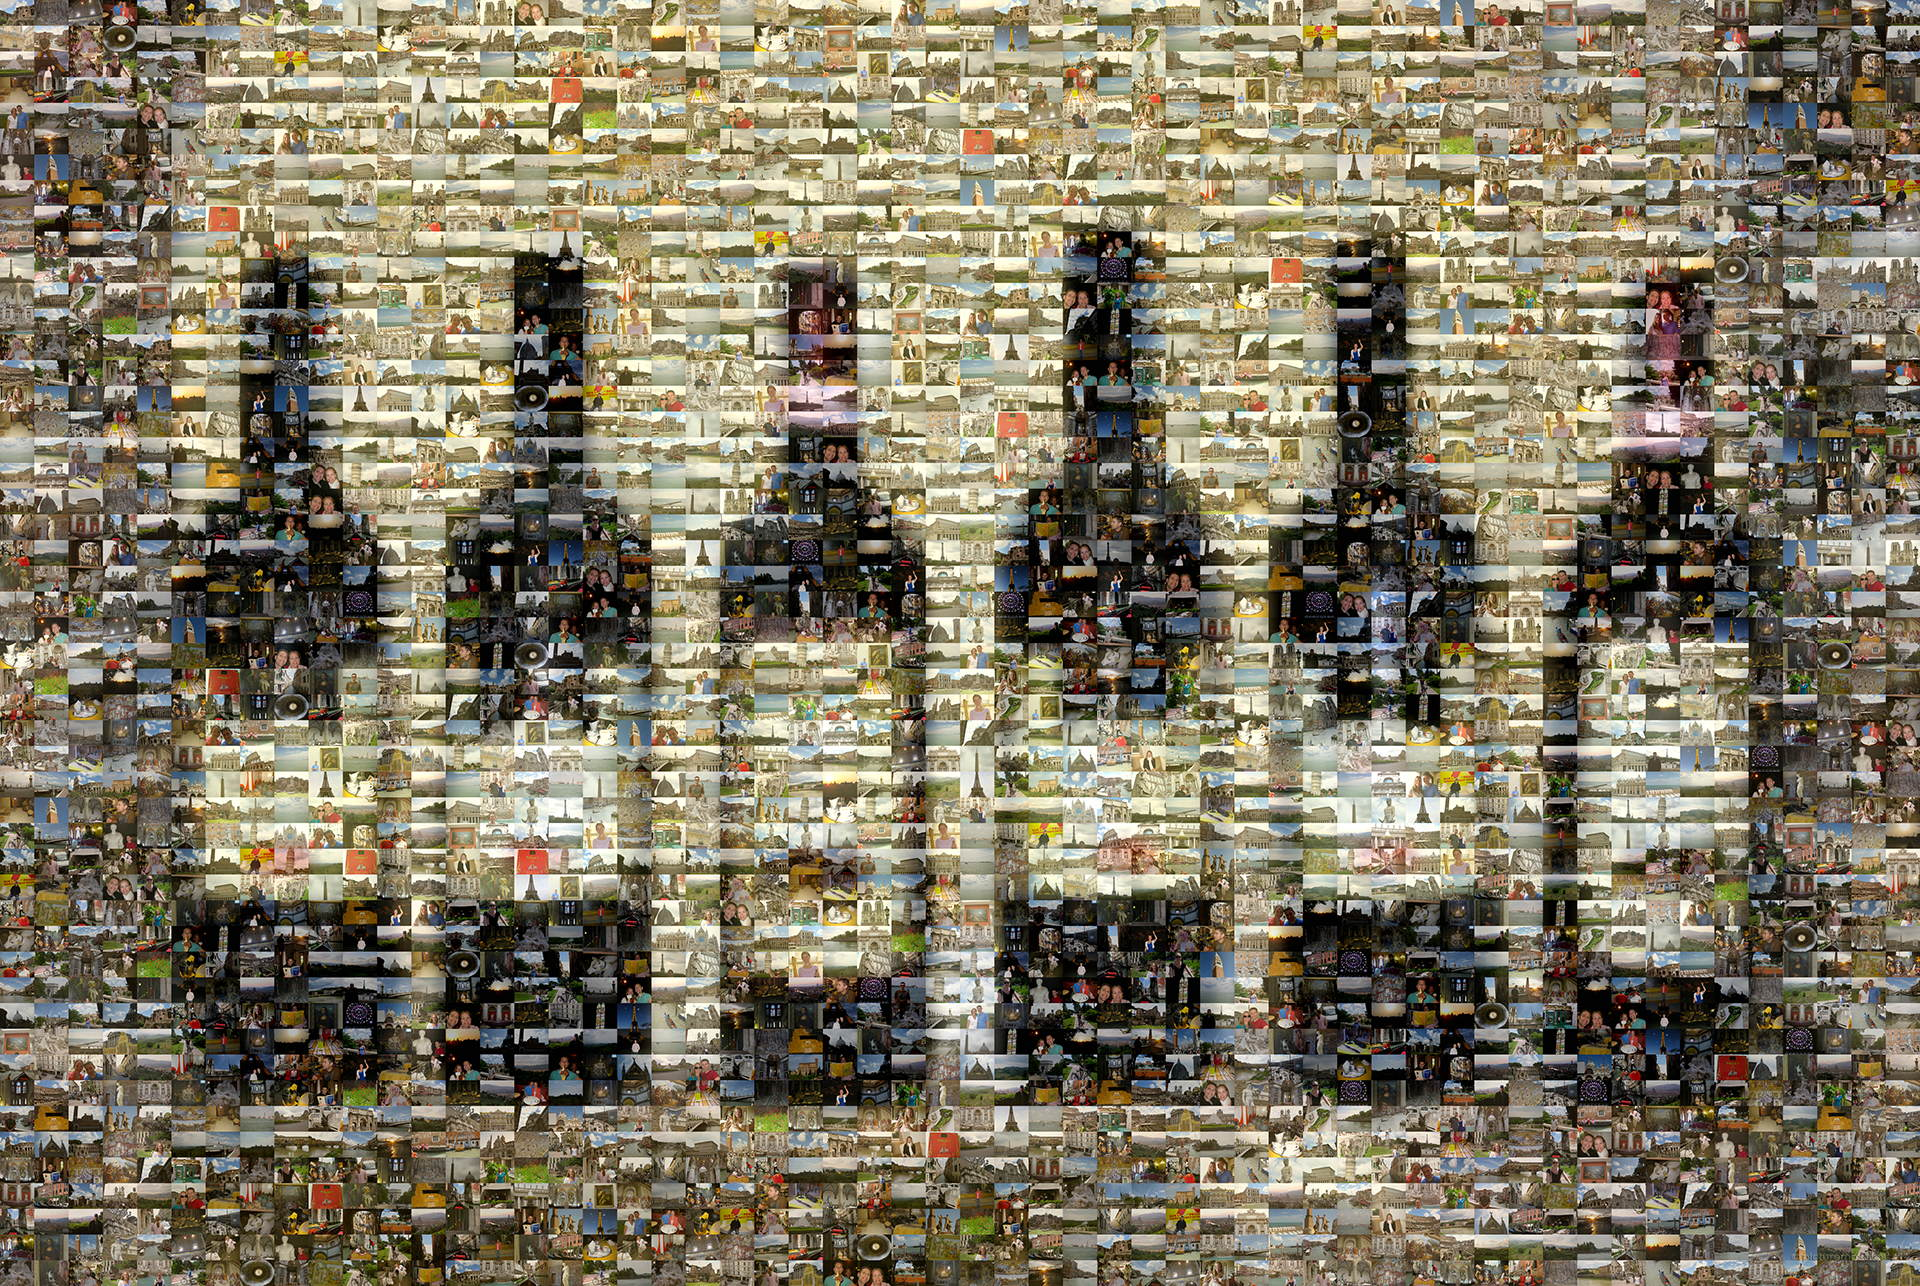 photo mosaic created using 236 customer selected photos